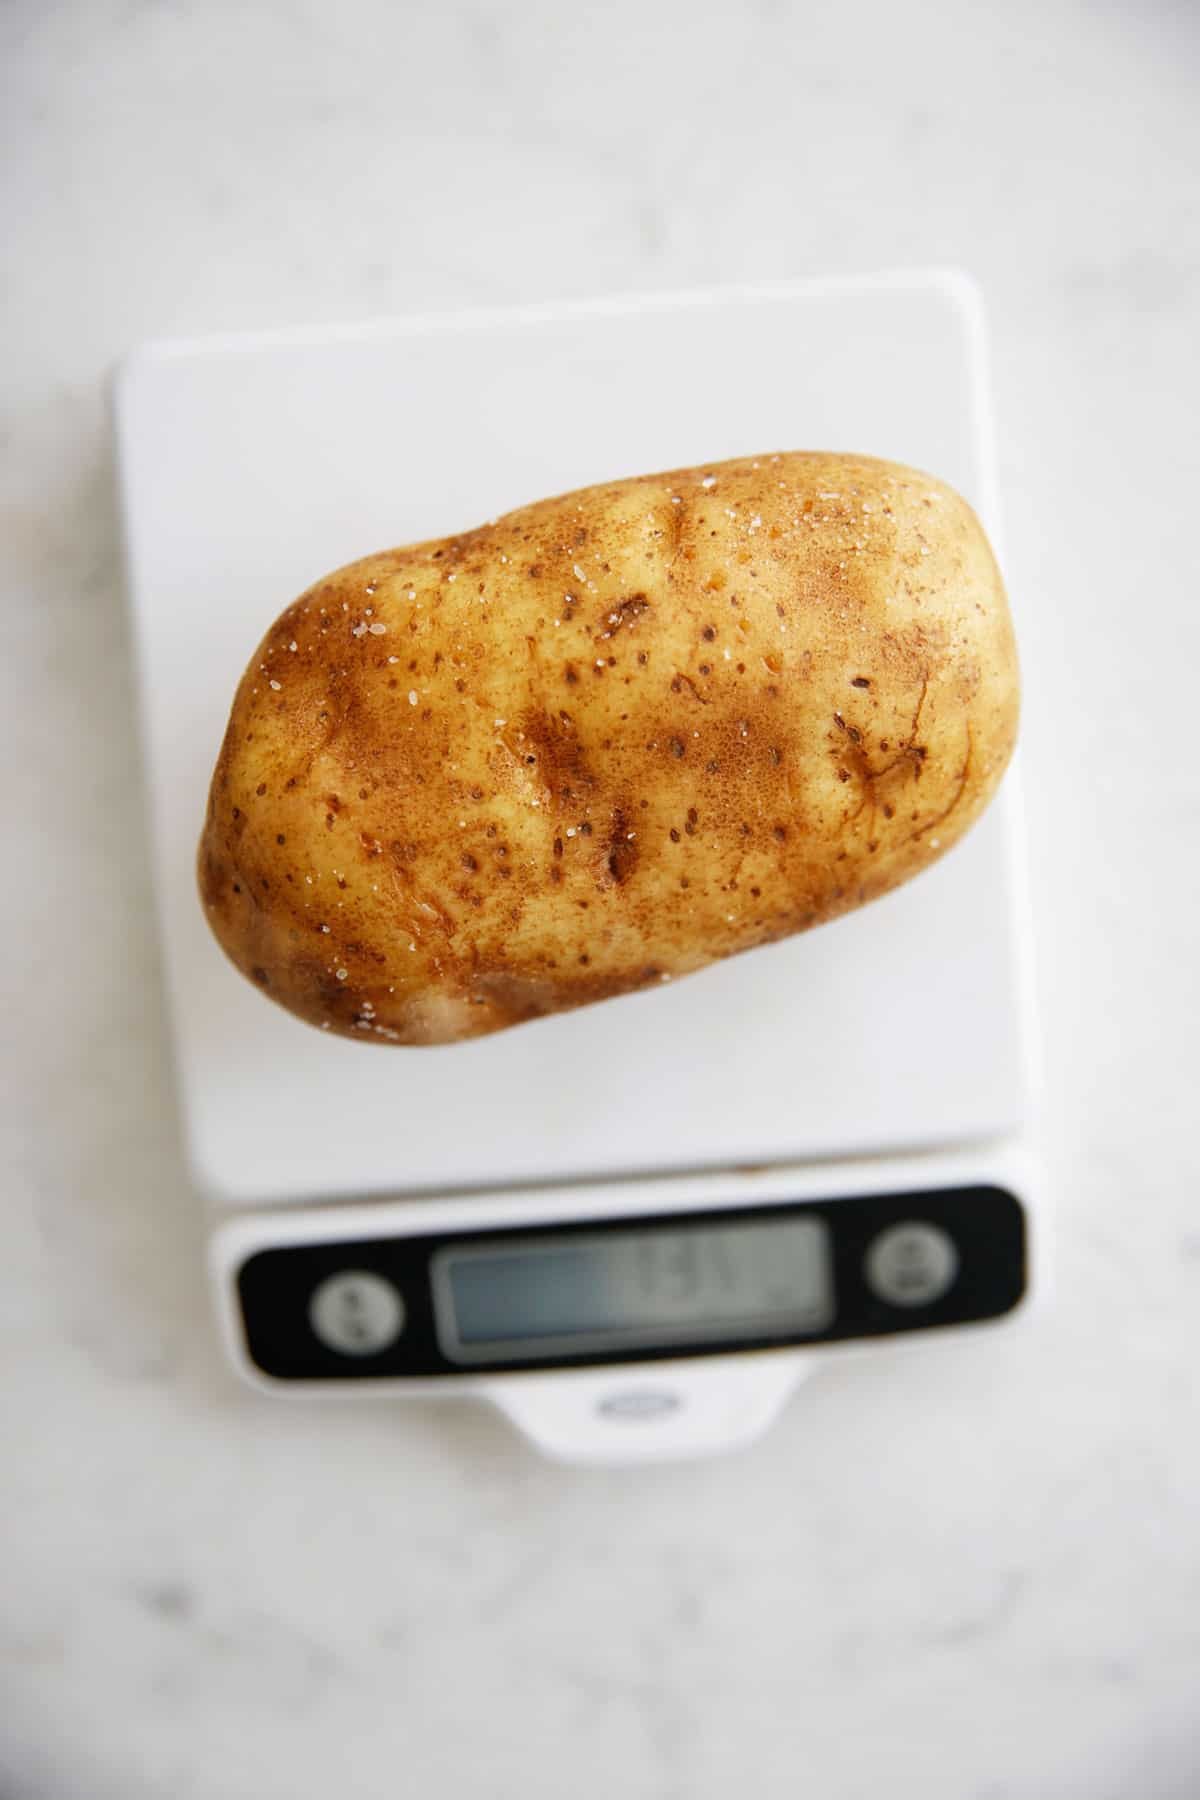 A potato on a scale to measure the size.